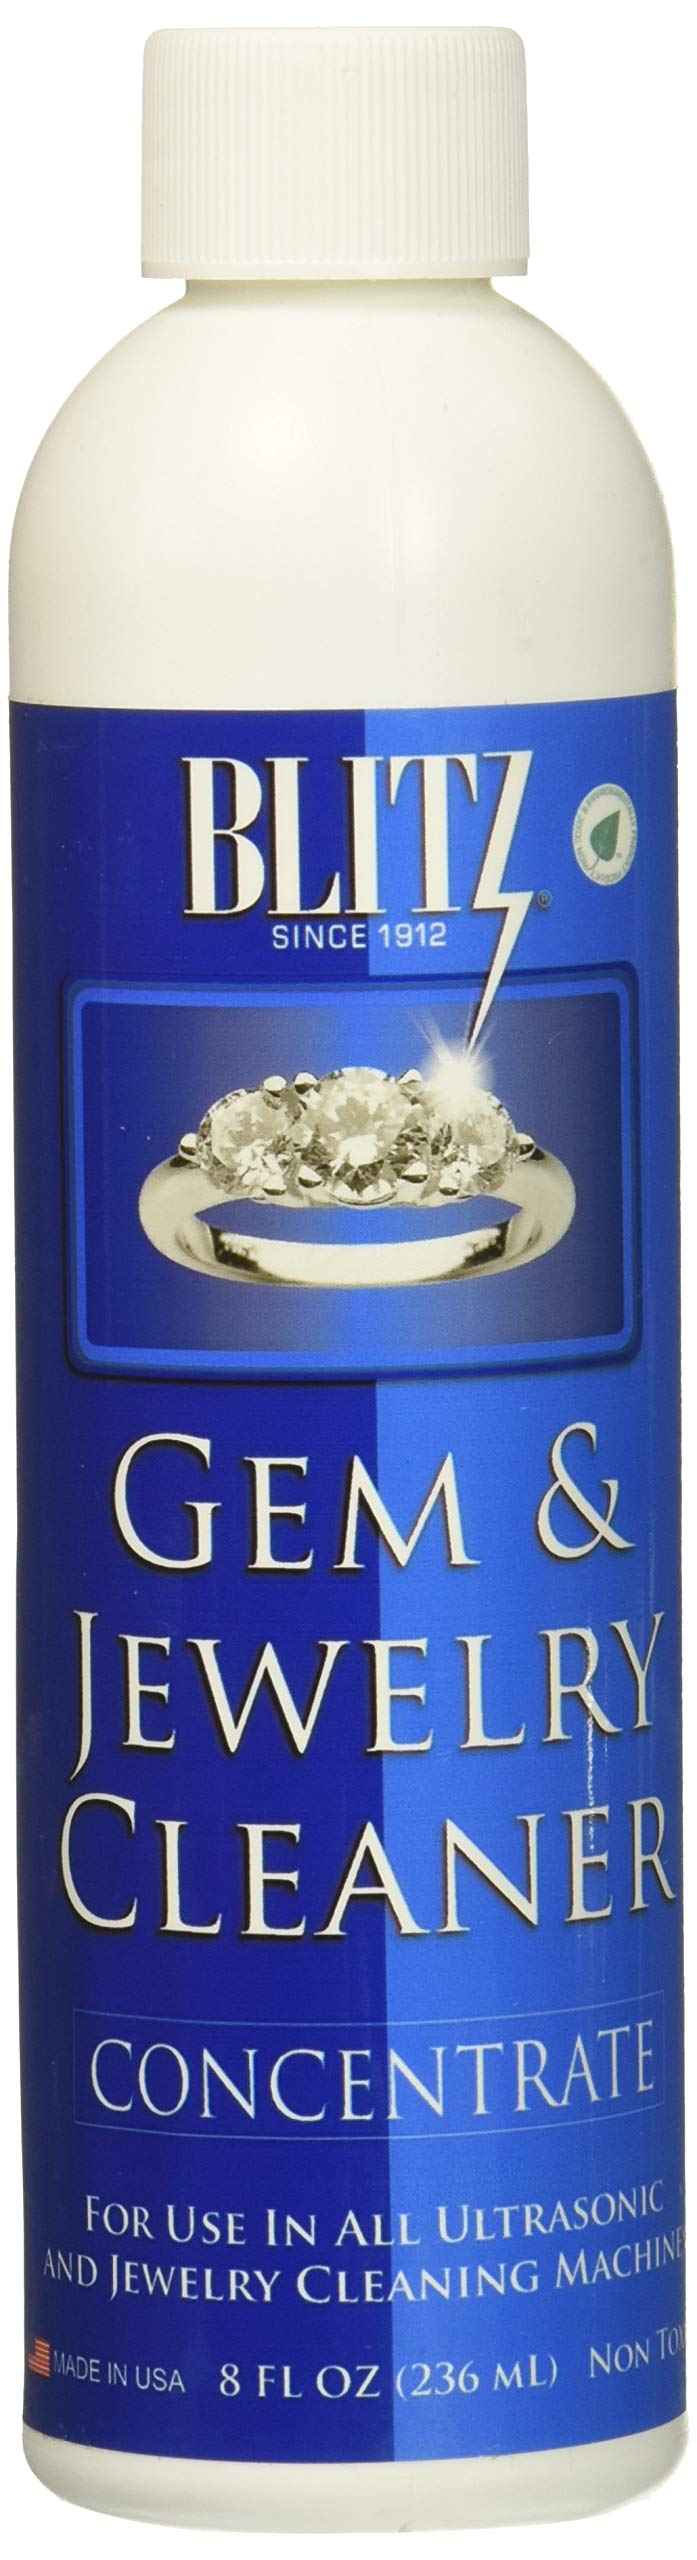 Blitz Gem & Jewelry Cleaner Concentrate (8 Oz) (6-Pack)